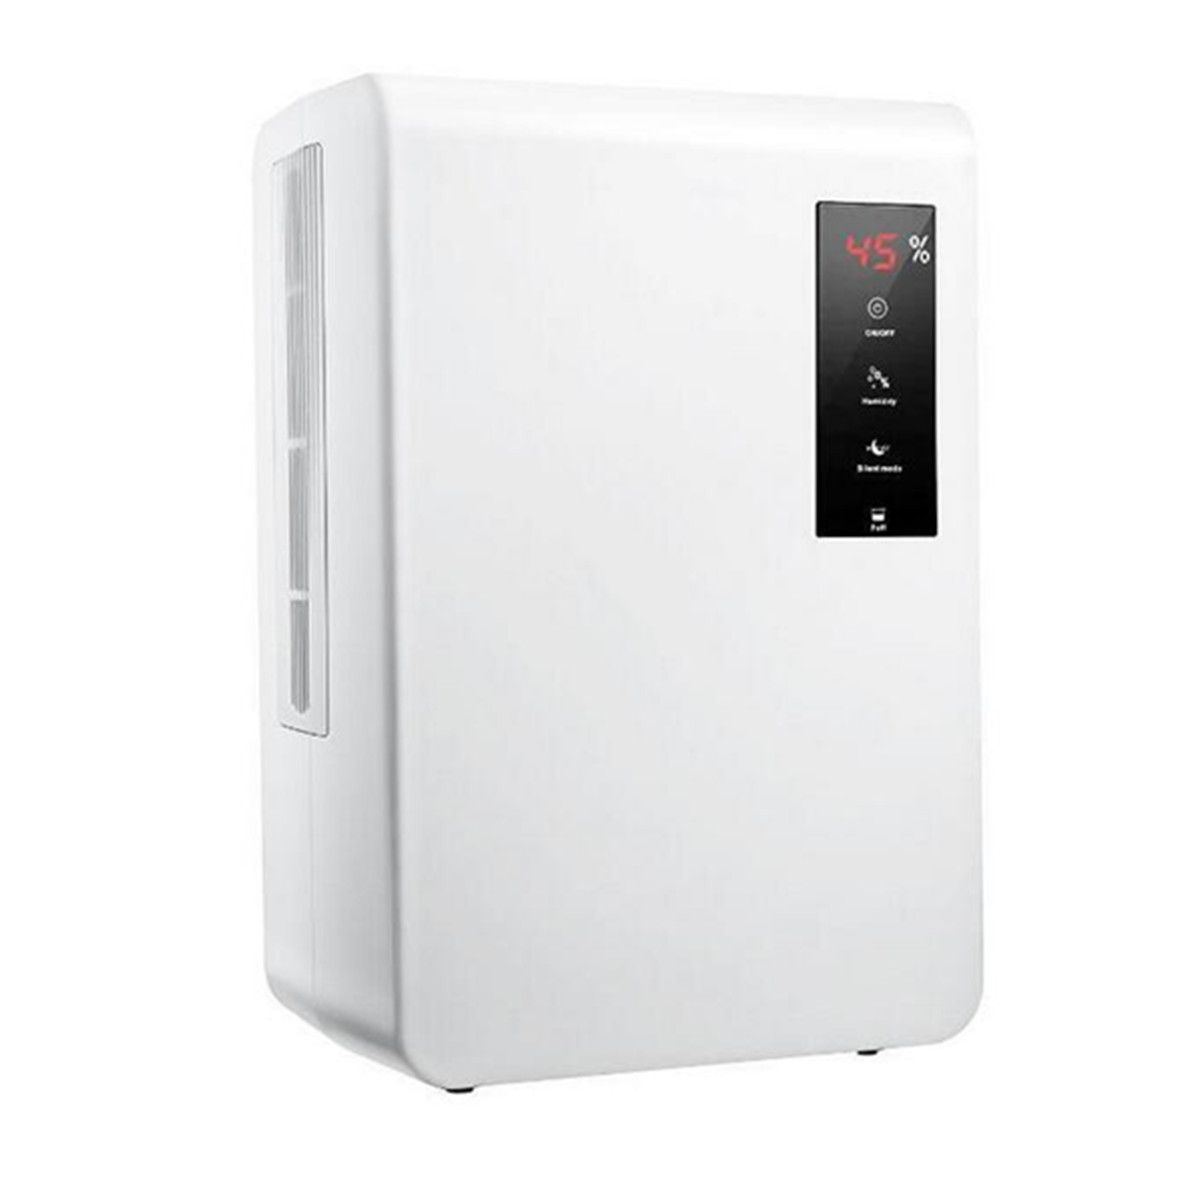 AX3 3L 150W White Portable Dehumidifier Mute for Eliminating Moisture Absorption Air Dryer in Home Kitchen Bathroom Basement